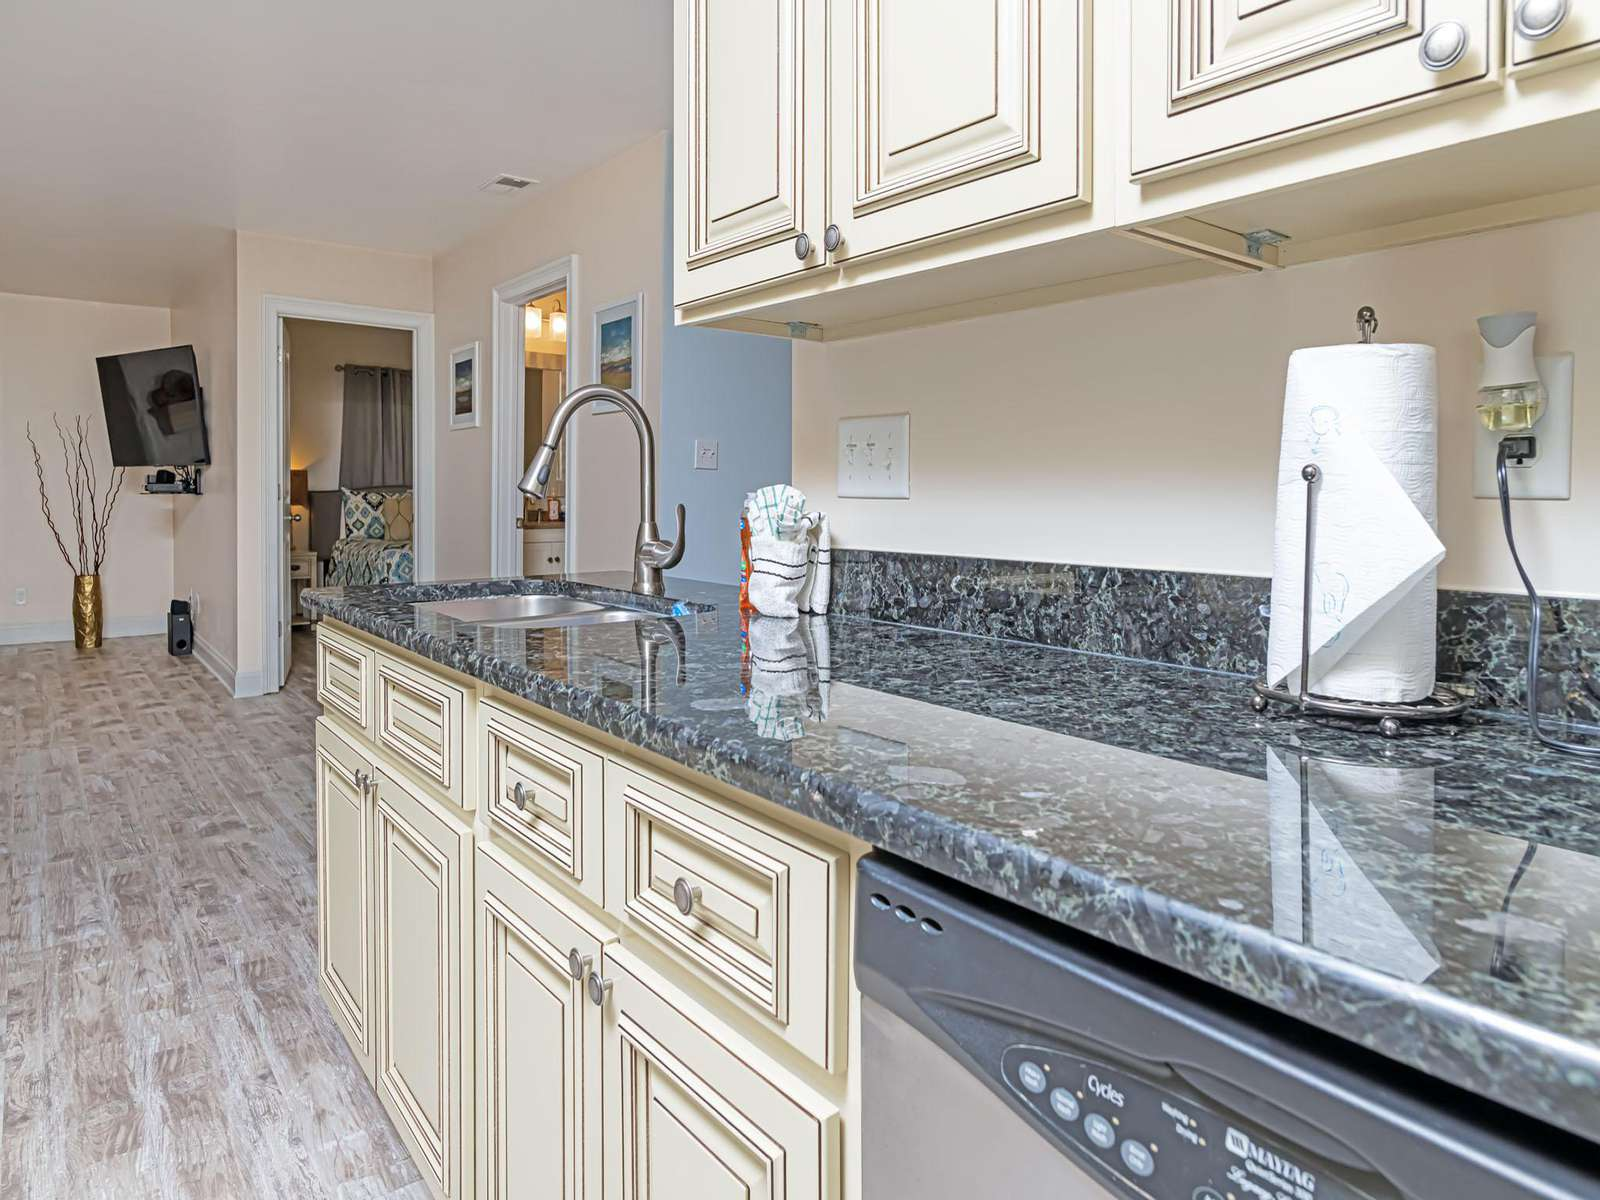 Cooking is a breeze in this kitchen! Contact us today!